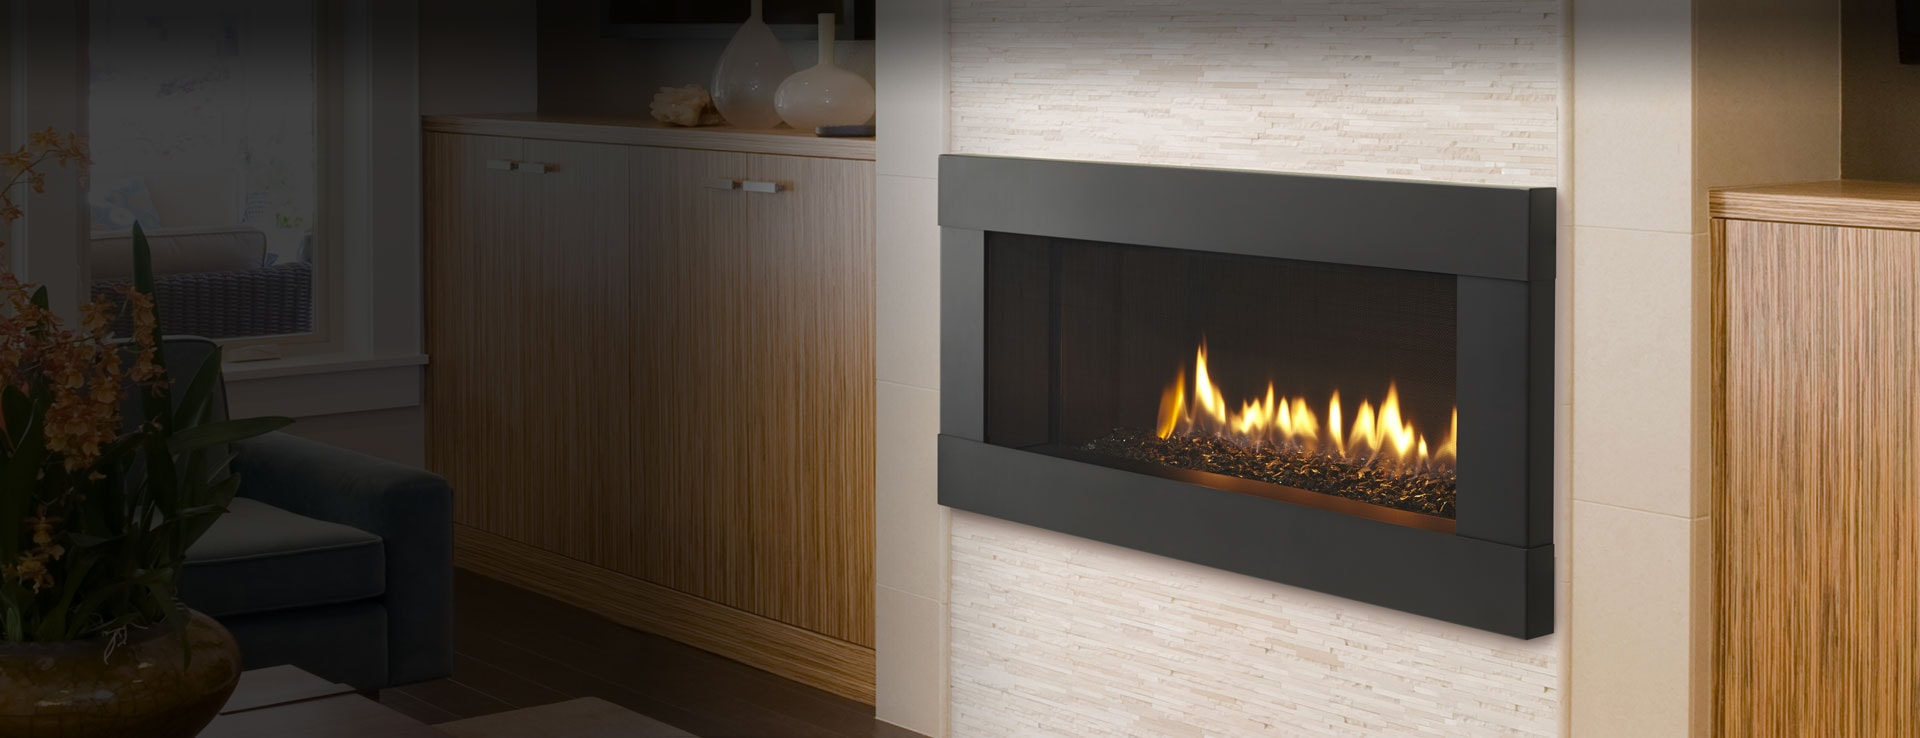 crave series gas fireplaces affordable fireplaces heatilator